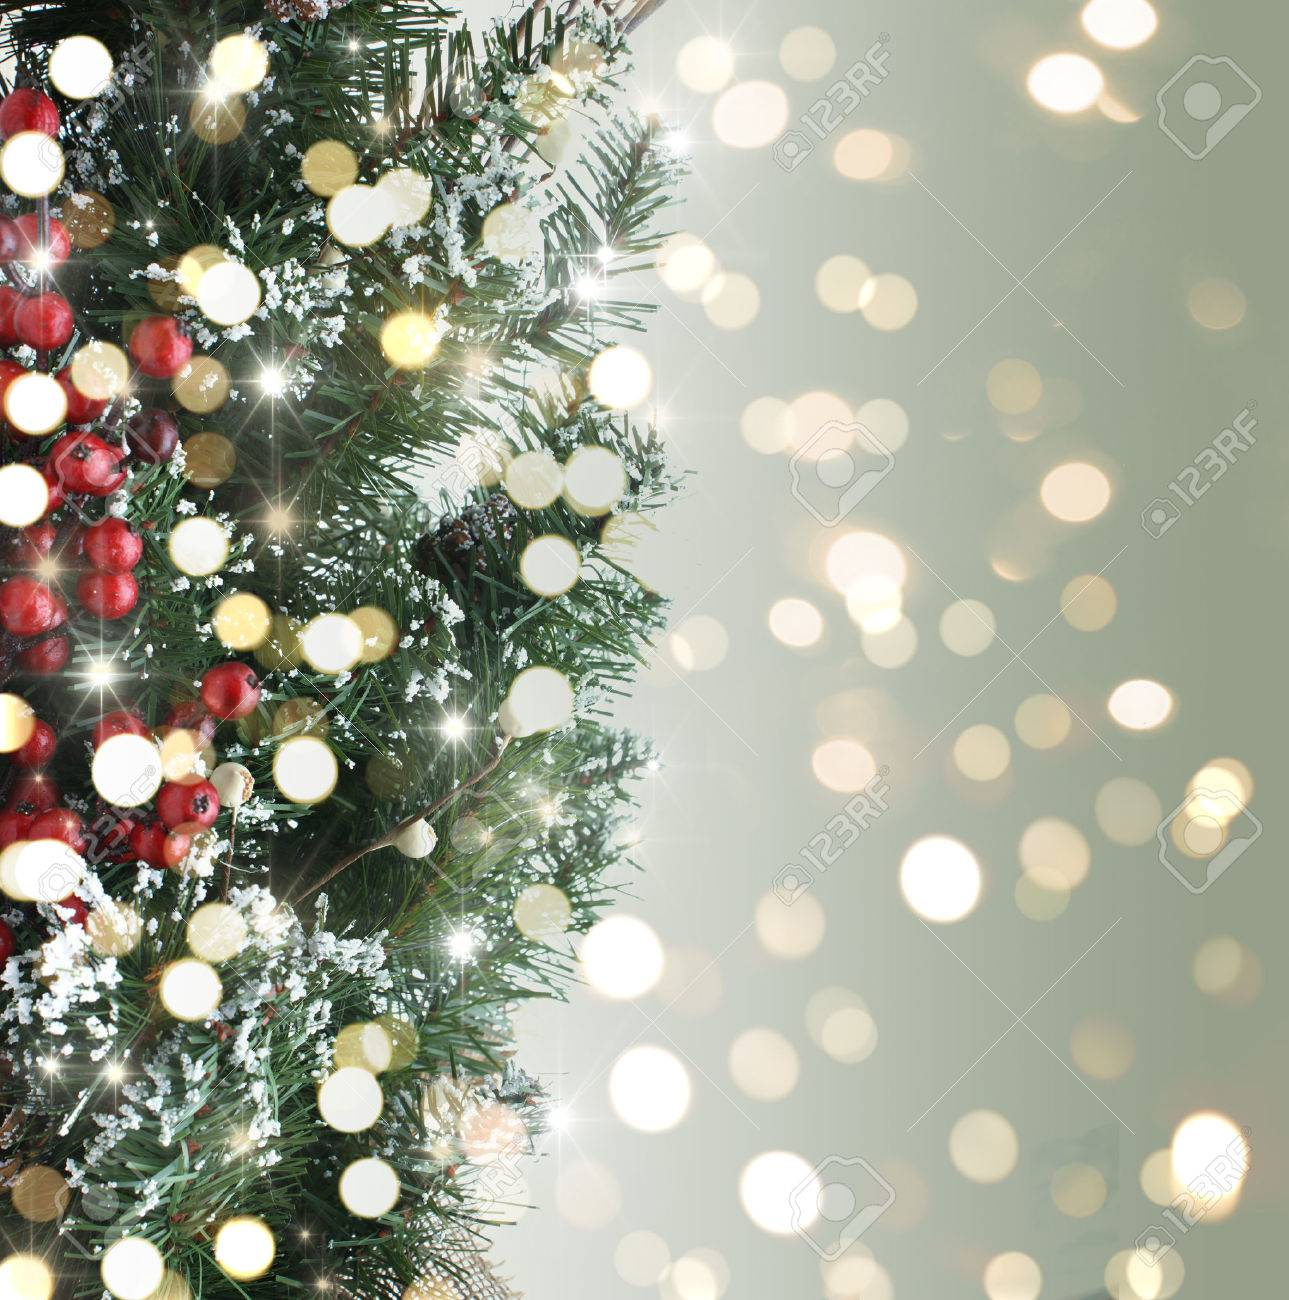 1289x1300 - Christmas Trees Backgrounds 1